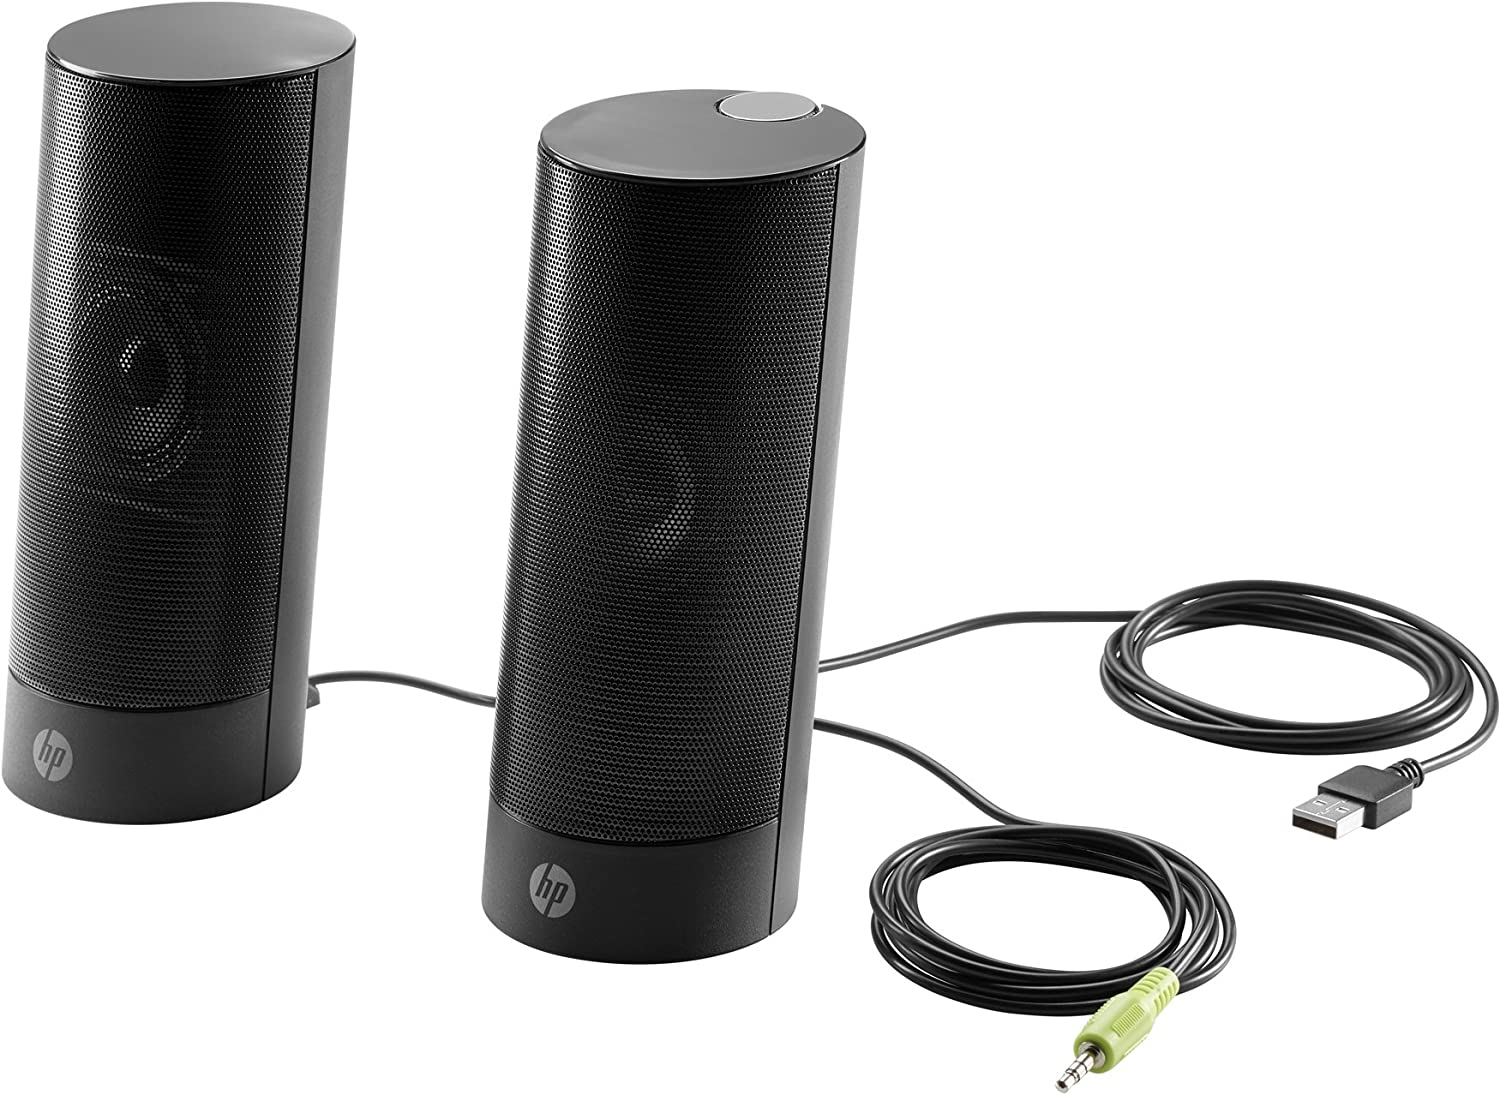 HP USB Business Speakers v2 (N3R89AA)